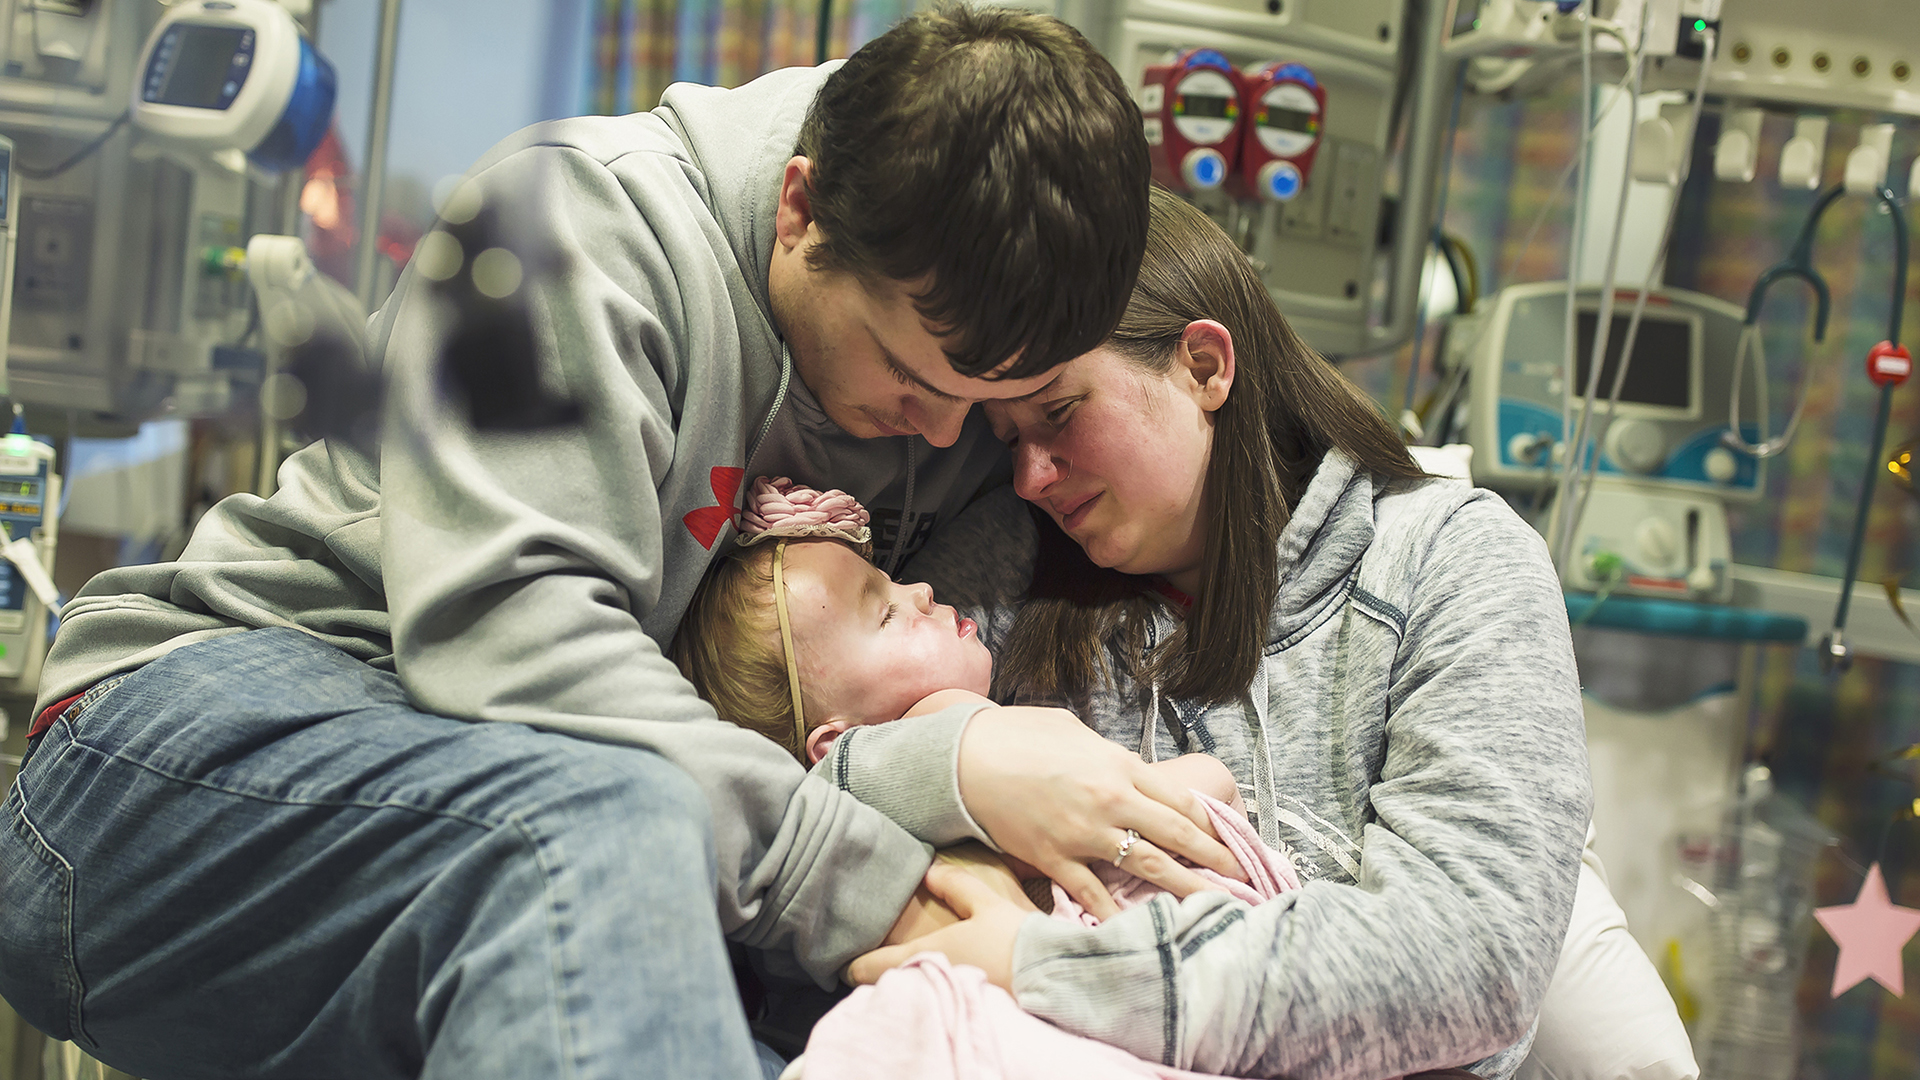 Grieving parents share 2-year-old's final moments to encourage organ donors